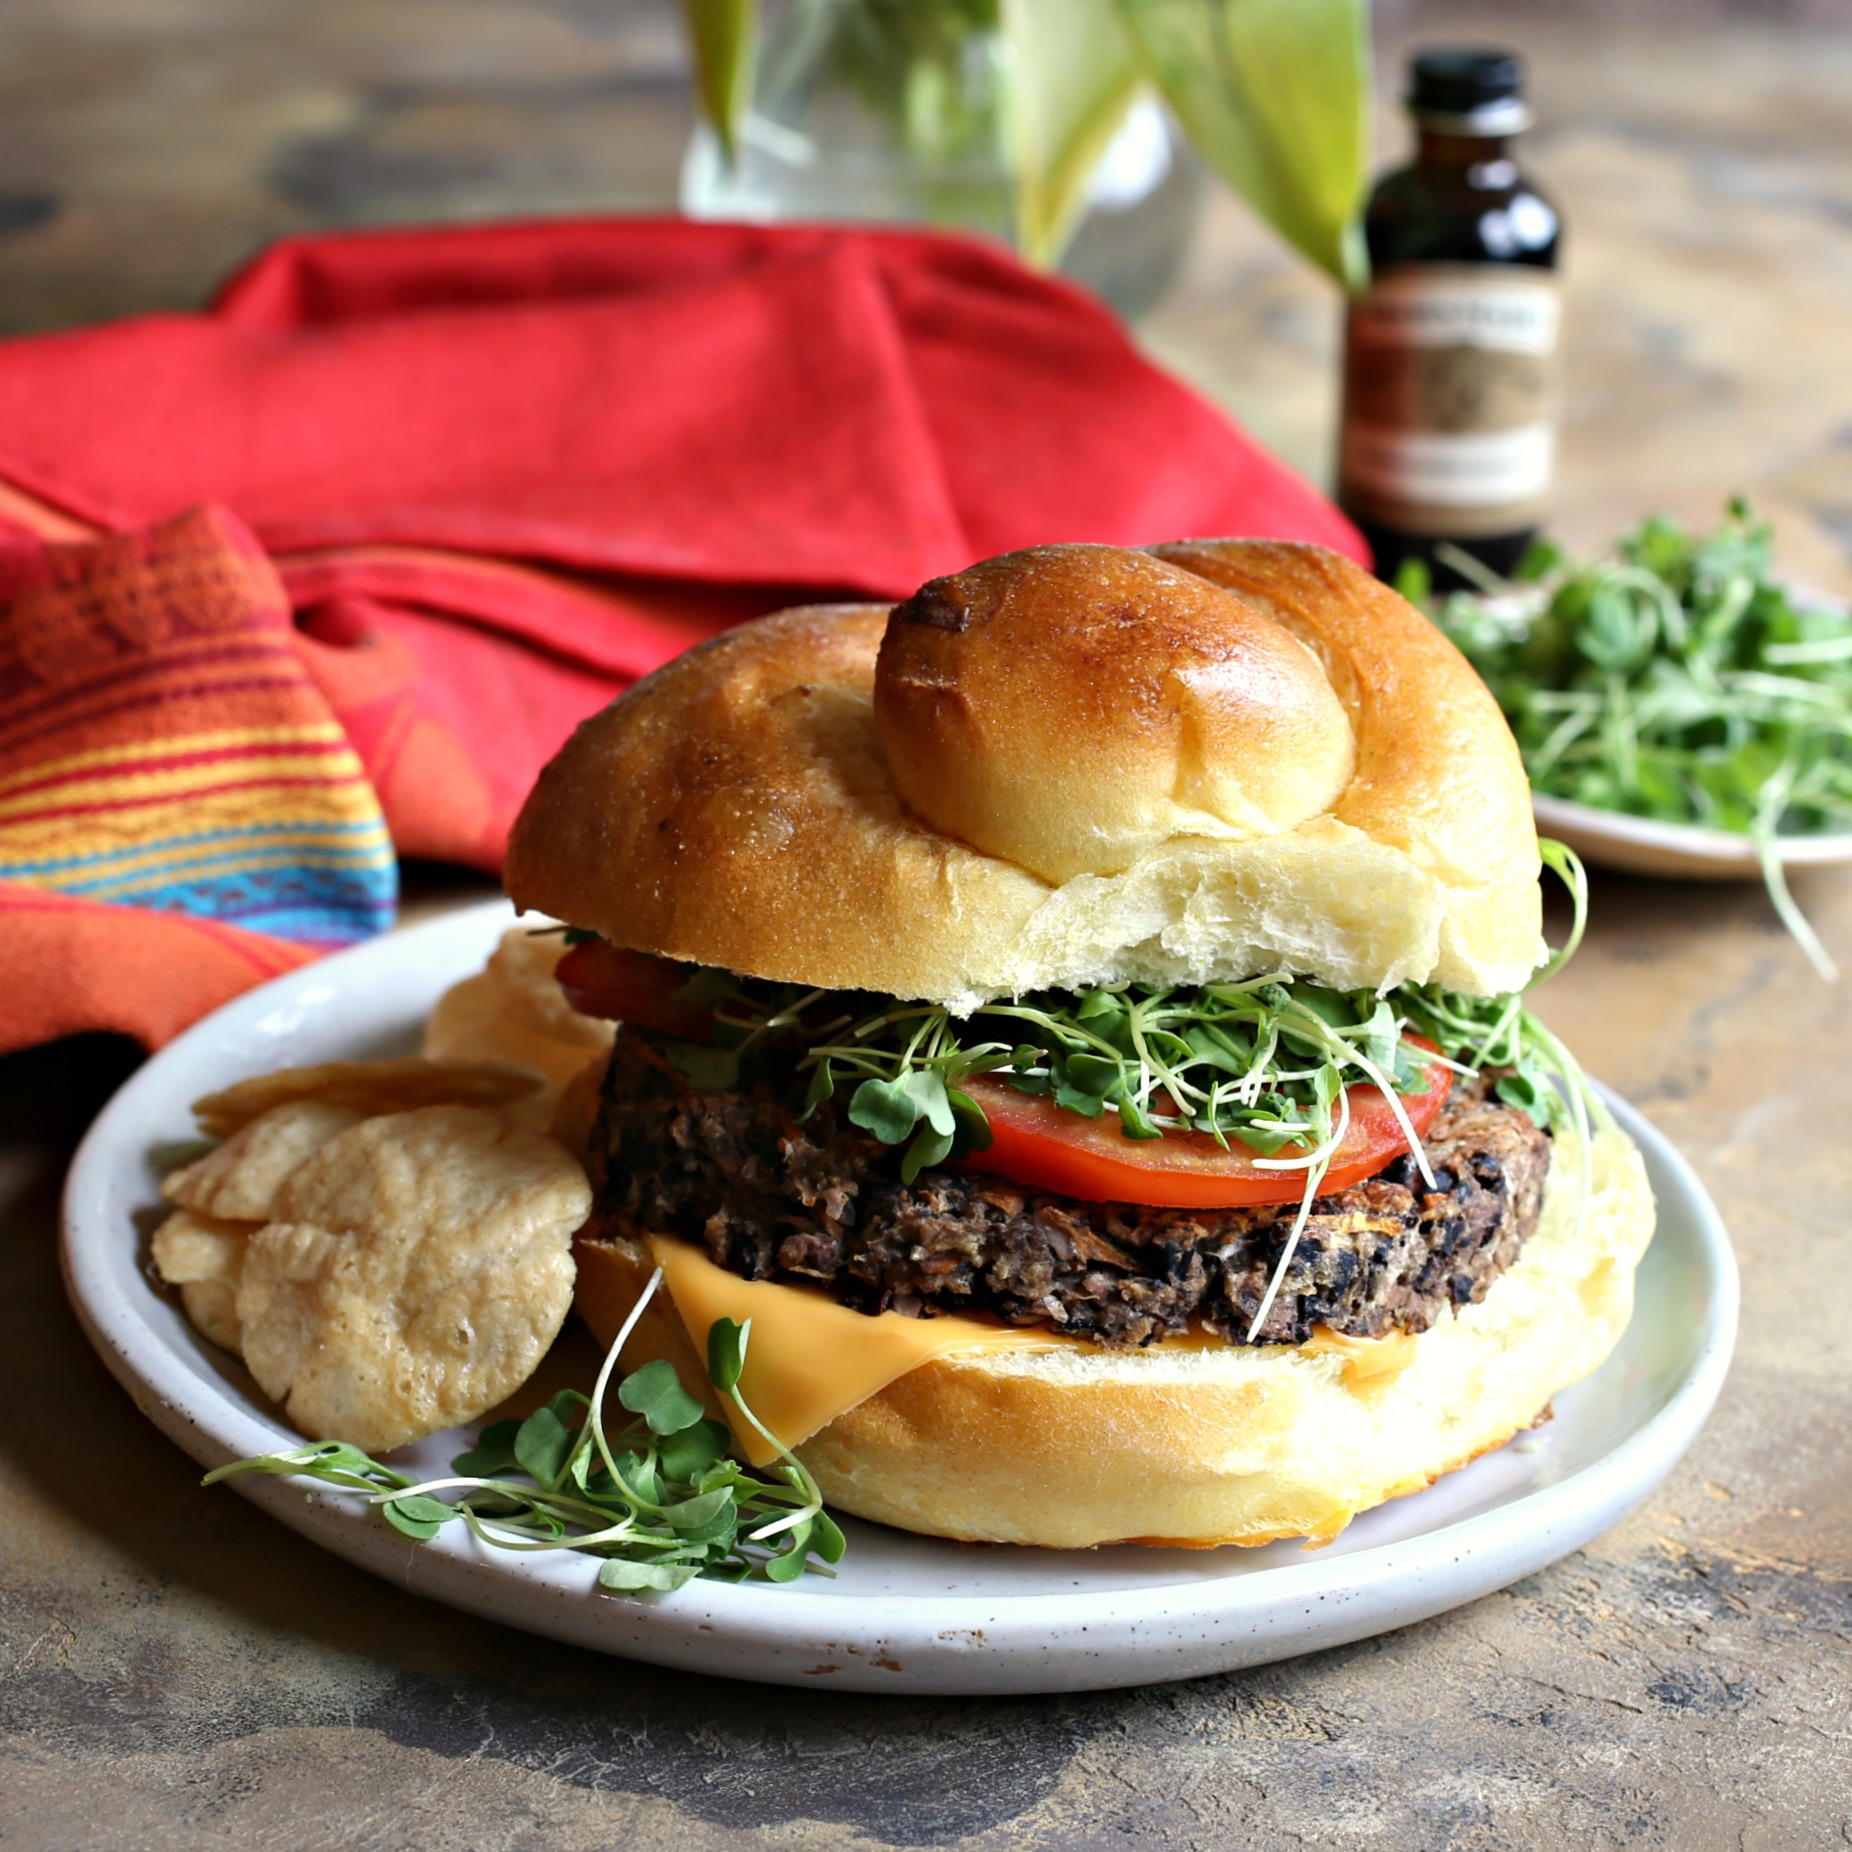 Recipe for black bean burgers flavored with coffee extract for a smoky flavor.